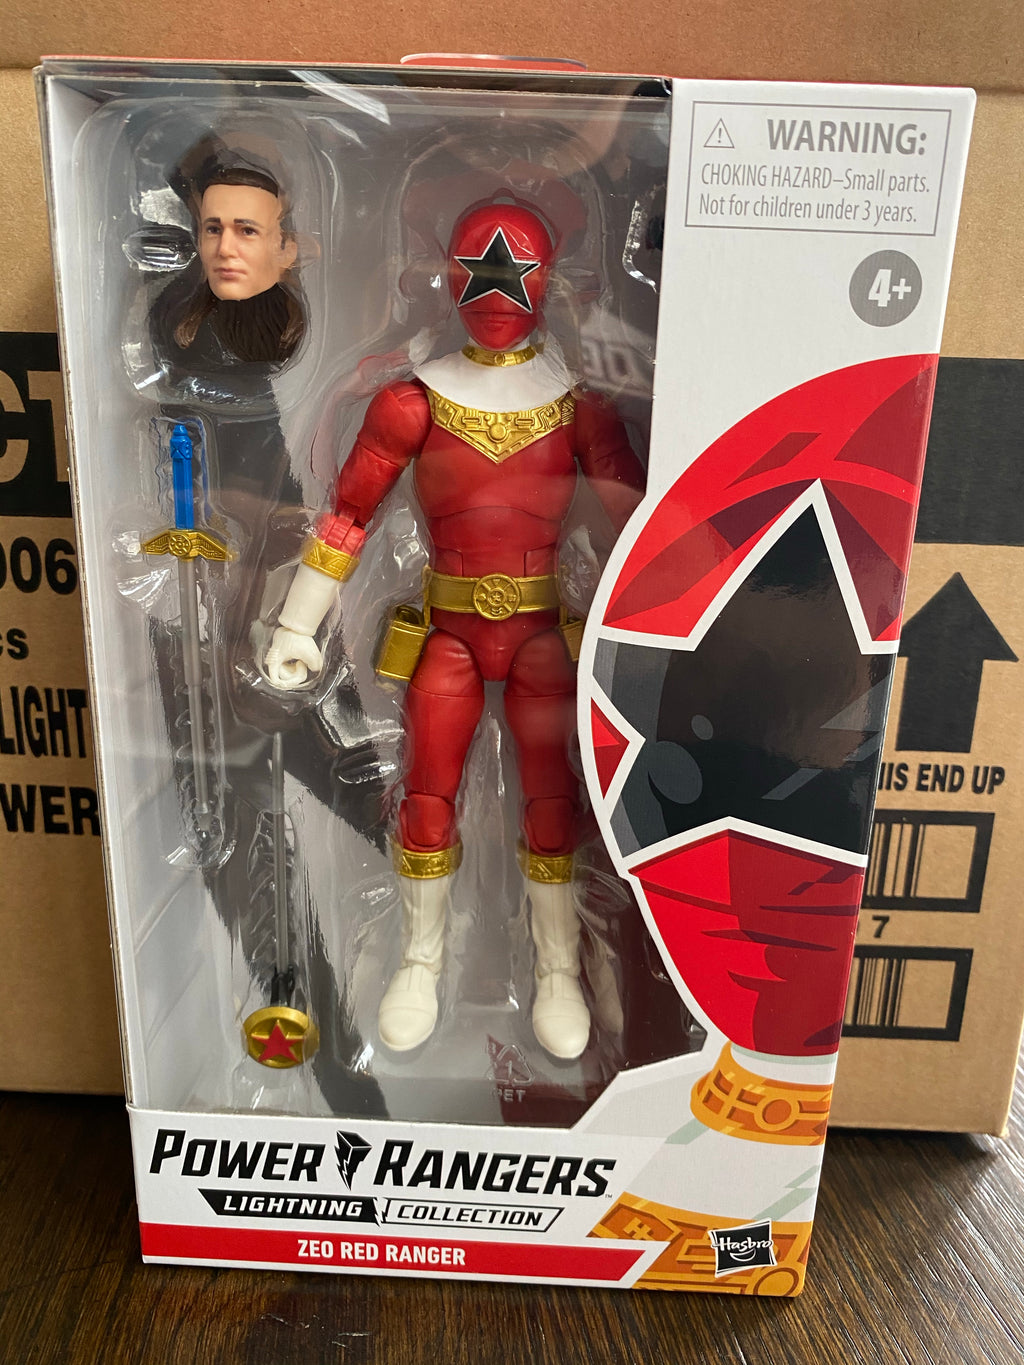 Hasbro Power Rangers Lightning Collection Zeo Red Ranger